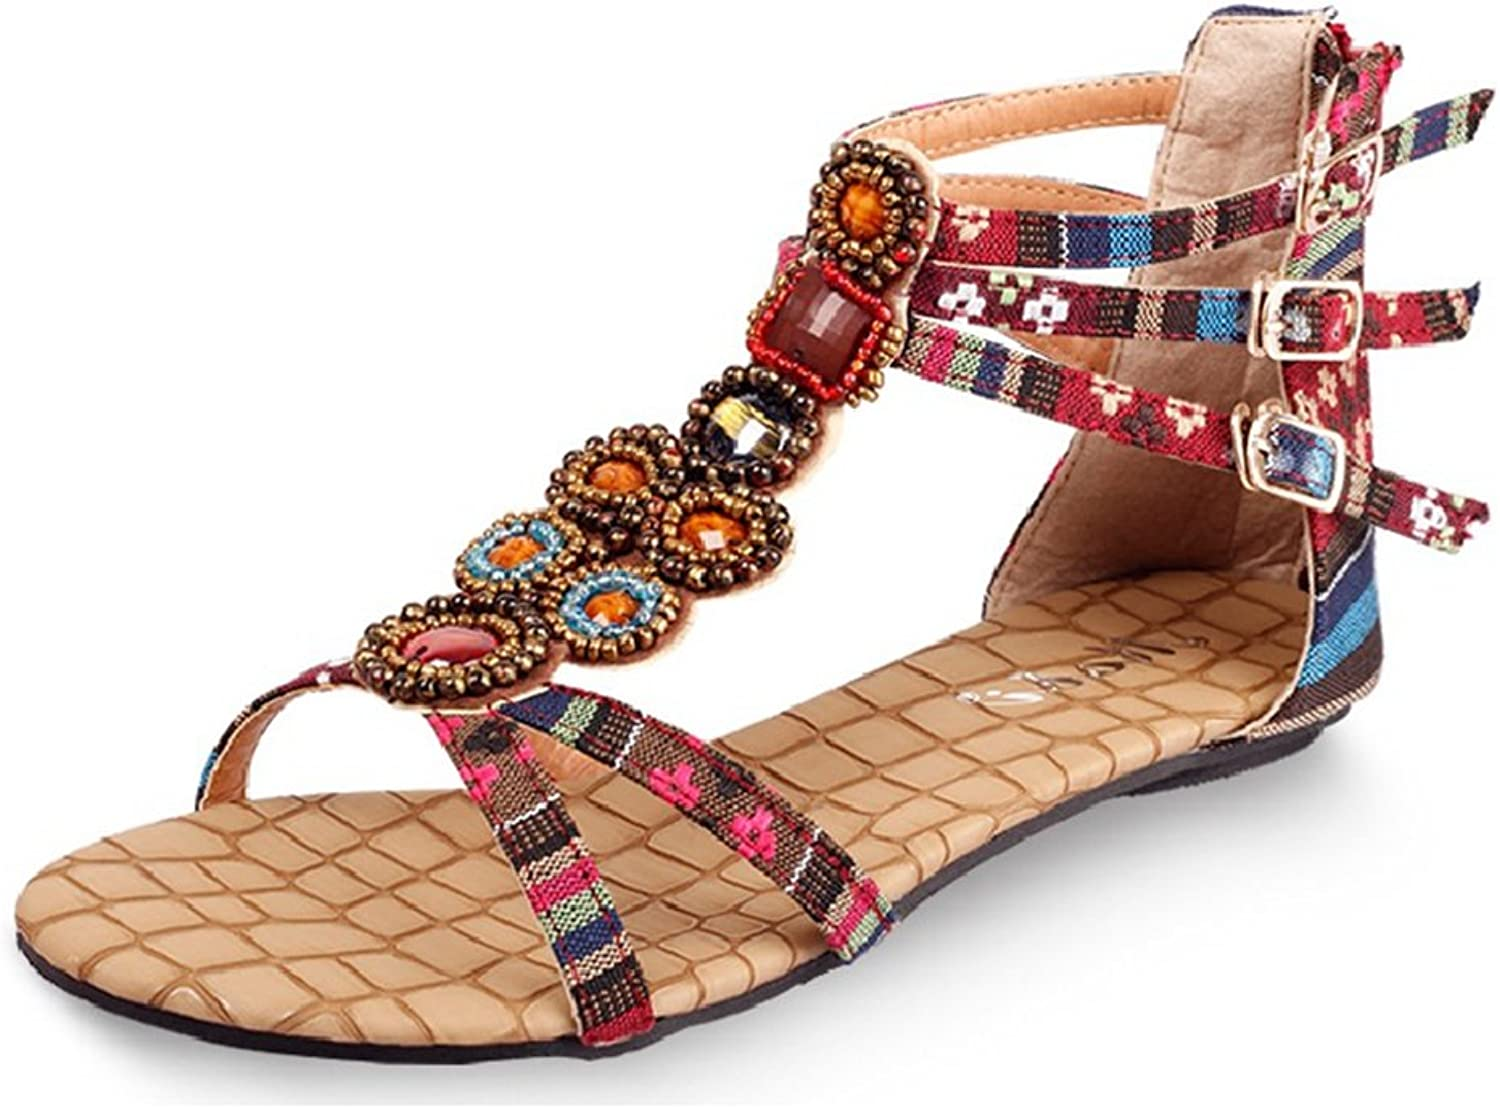 CYBLING Fashion Open Toe Bohemian Sandals for Women Flat Beach Strap shoes